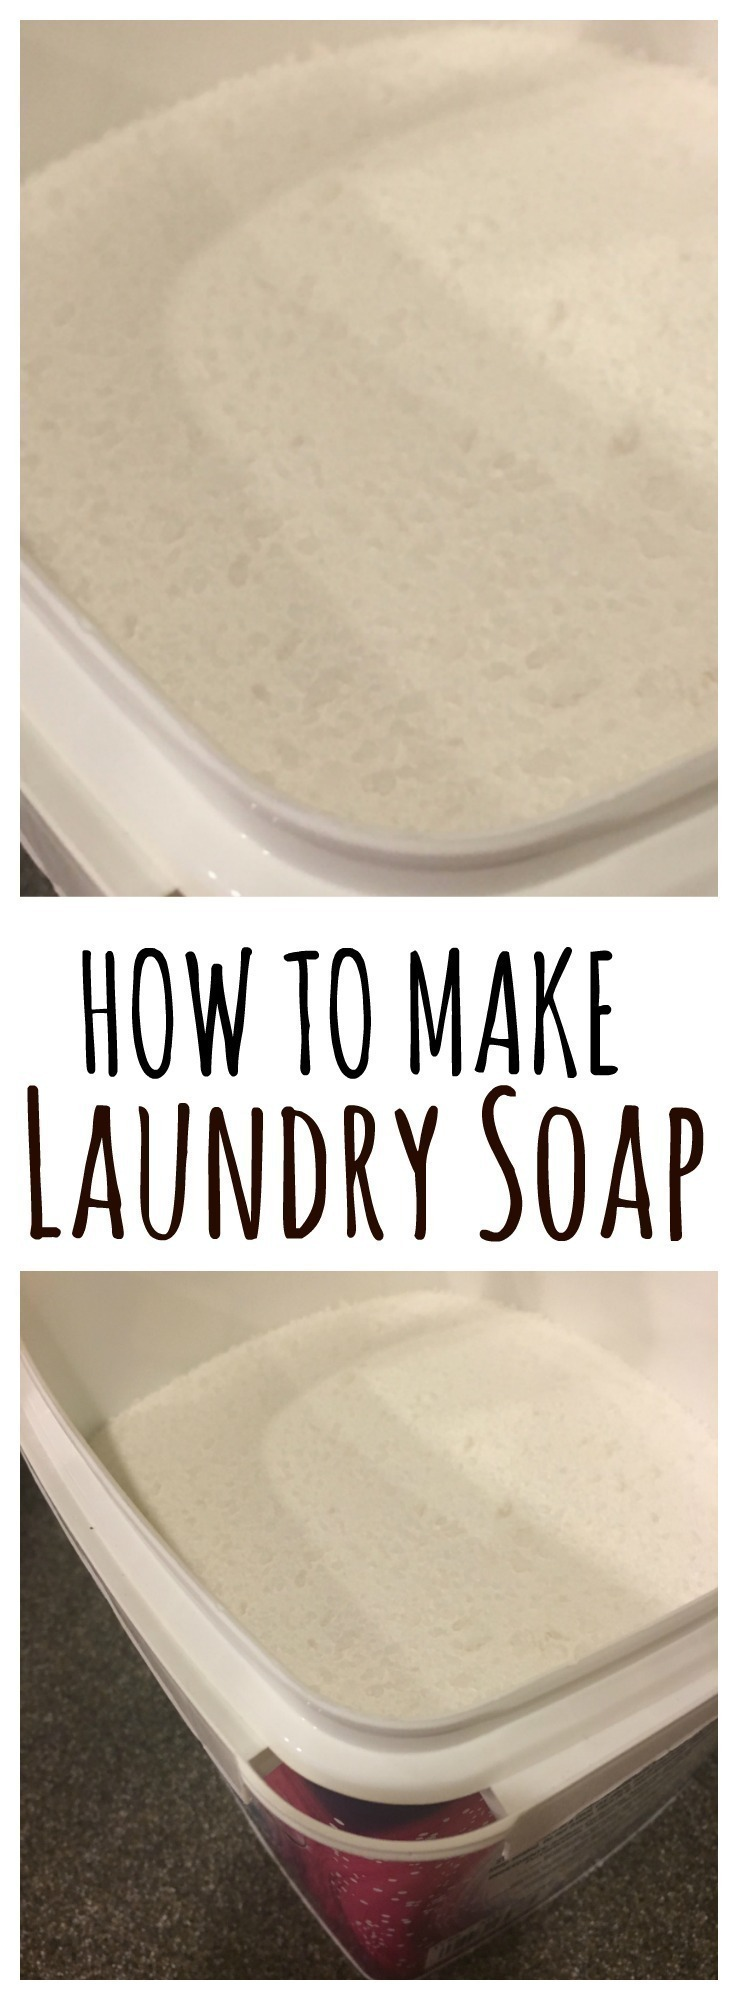 Make your own powdered laundry soap at home in just minutes with 2 key ingredients. It's non-toxic, economical and effective!